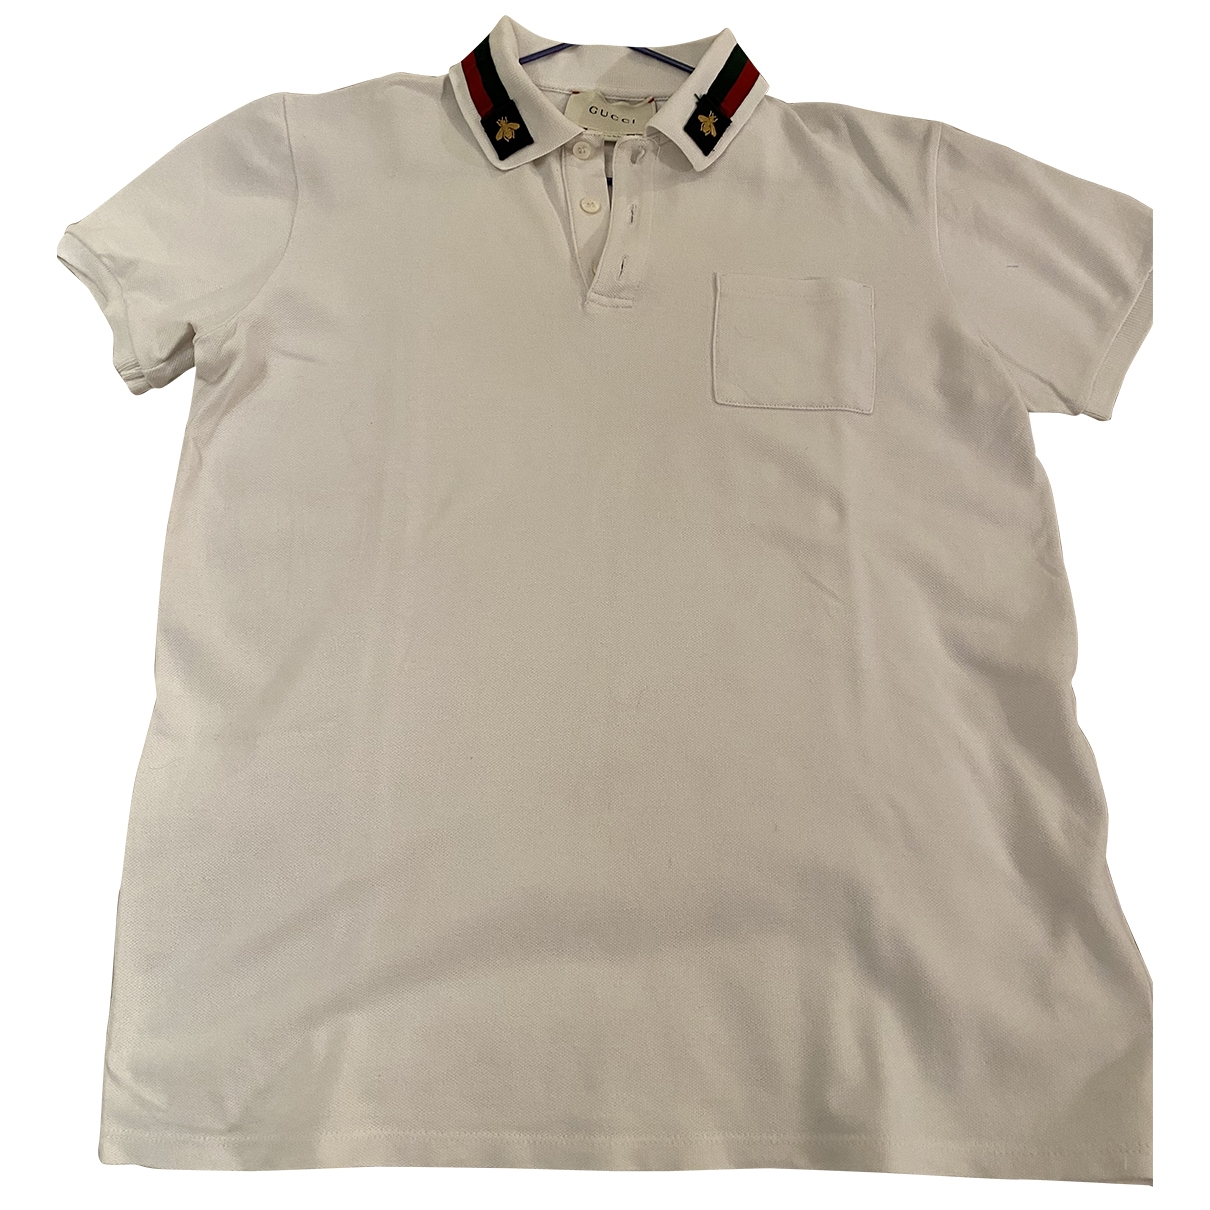 Gucci \N White Cotton  top for Kids 12 years - XS FR